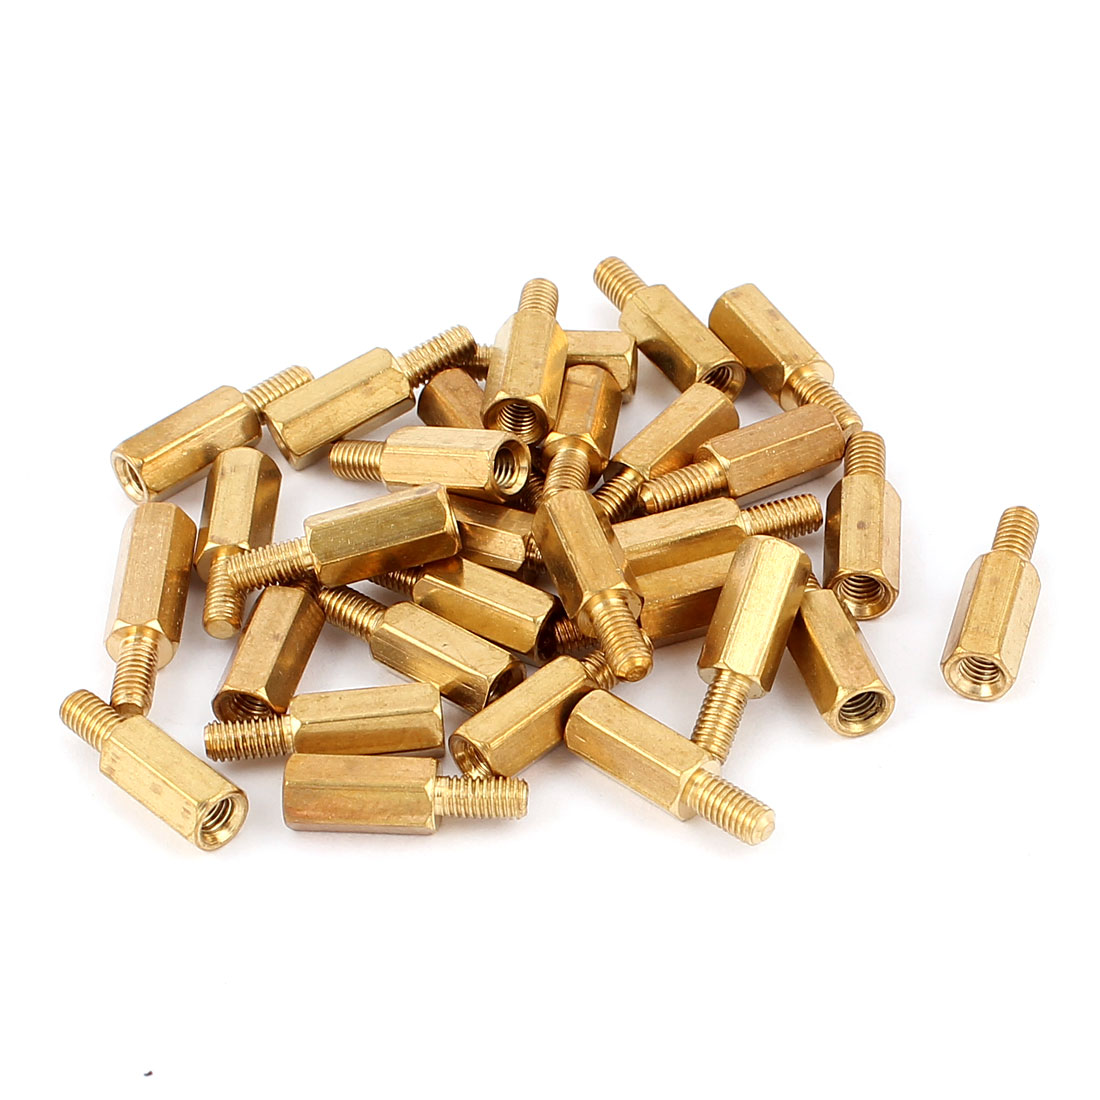 30Pcs M3 10mm+6mm Male to Female Brass Hexagon Standoff Spacer Pillar for PCB Motherboard